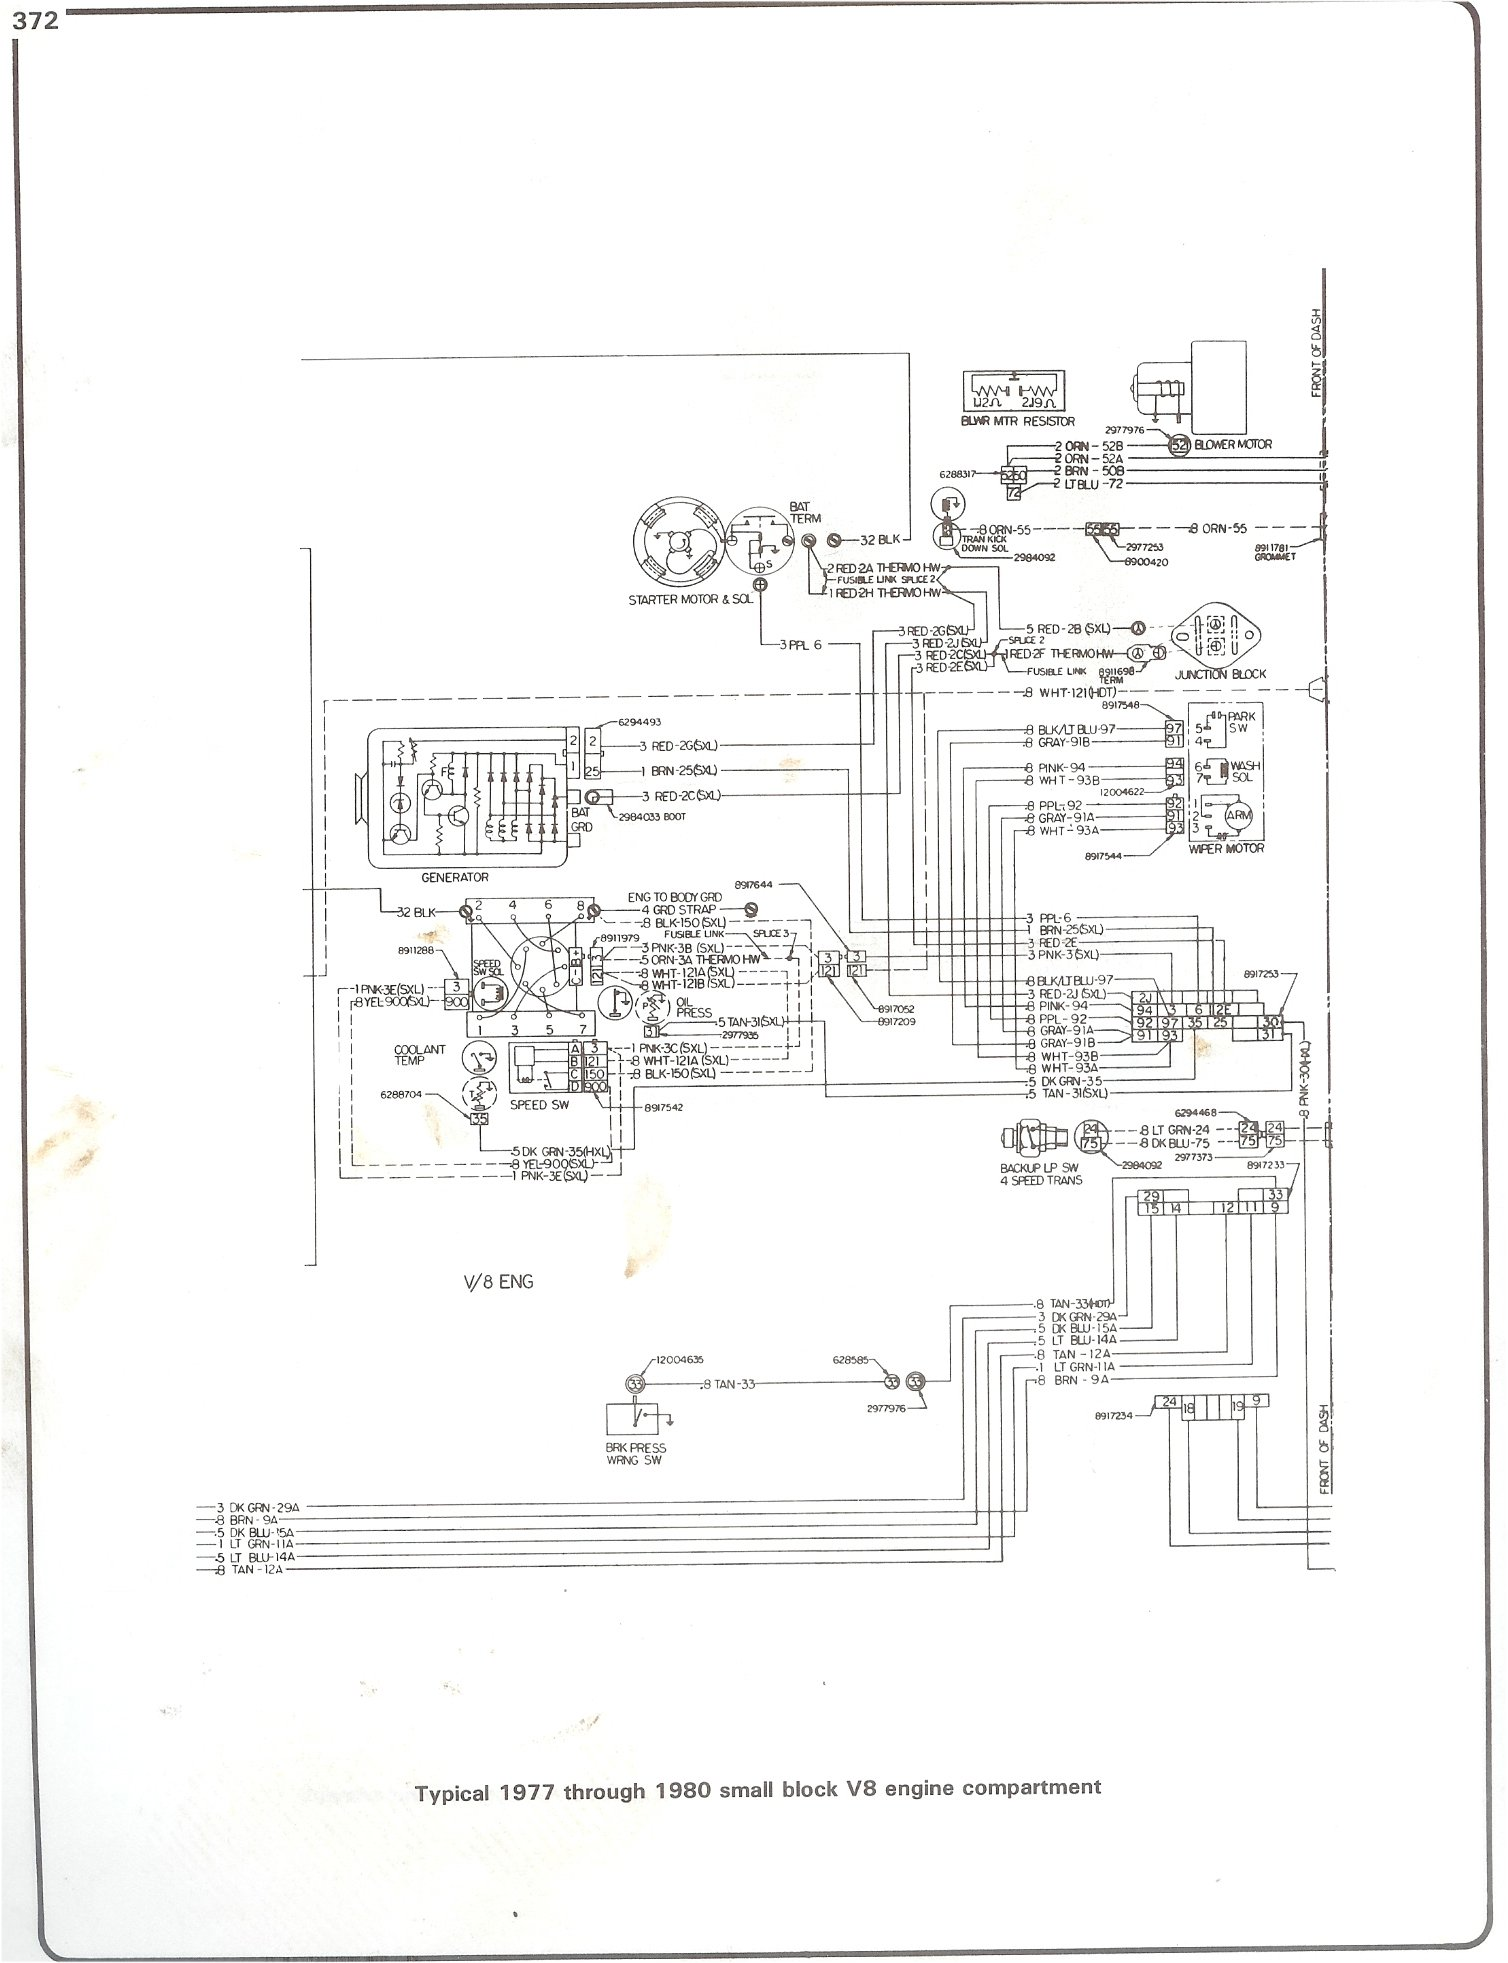 Complete 73 87 Wiring Diagrams 1985 K5 Blazer Diagram 77 80 Sbc Engine